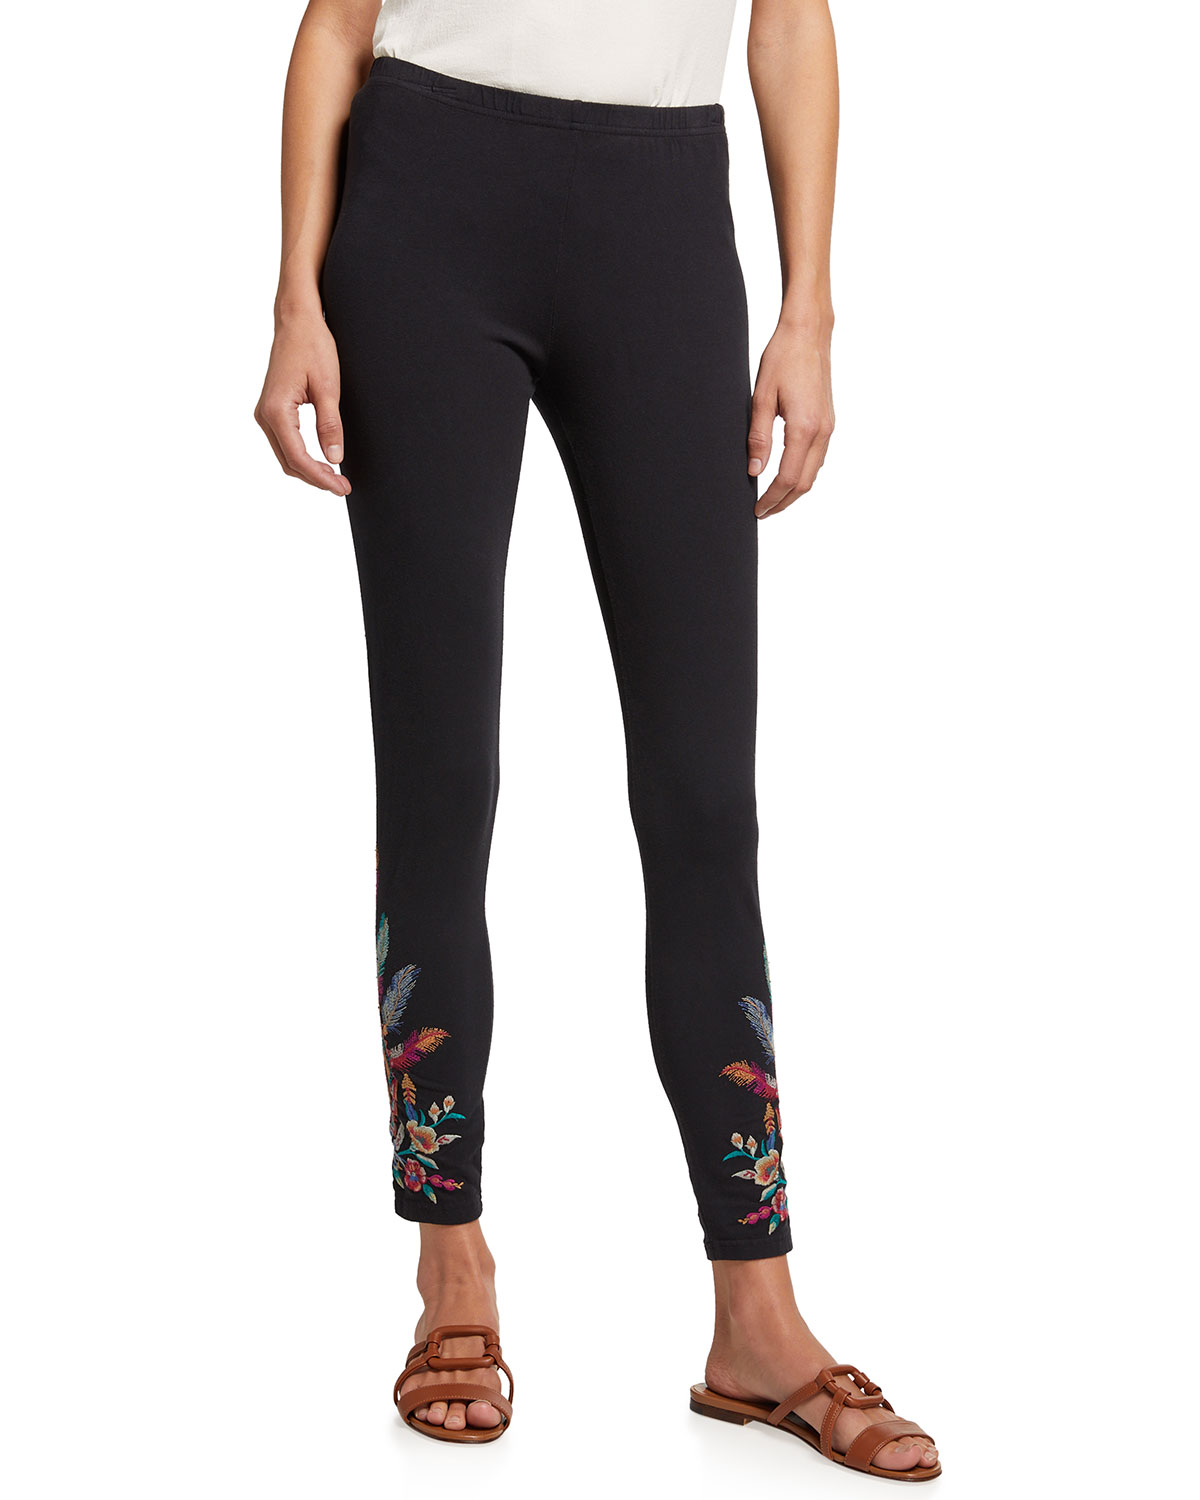 Johnny Was Imani Leggings with Floral Embroidery